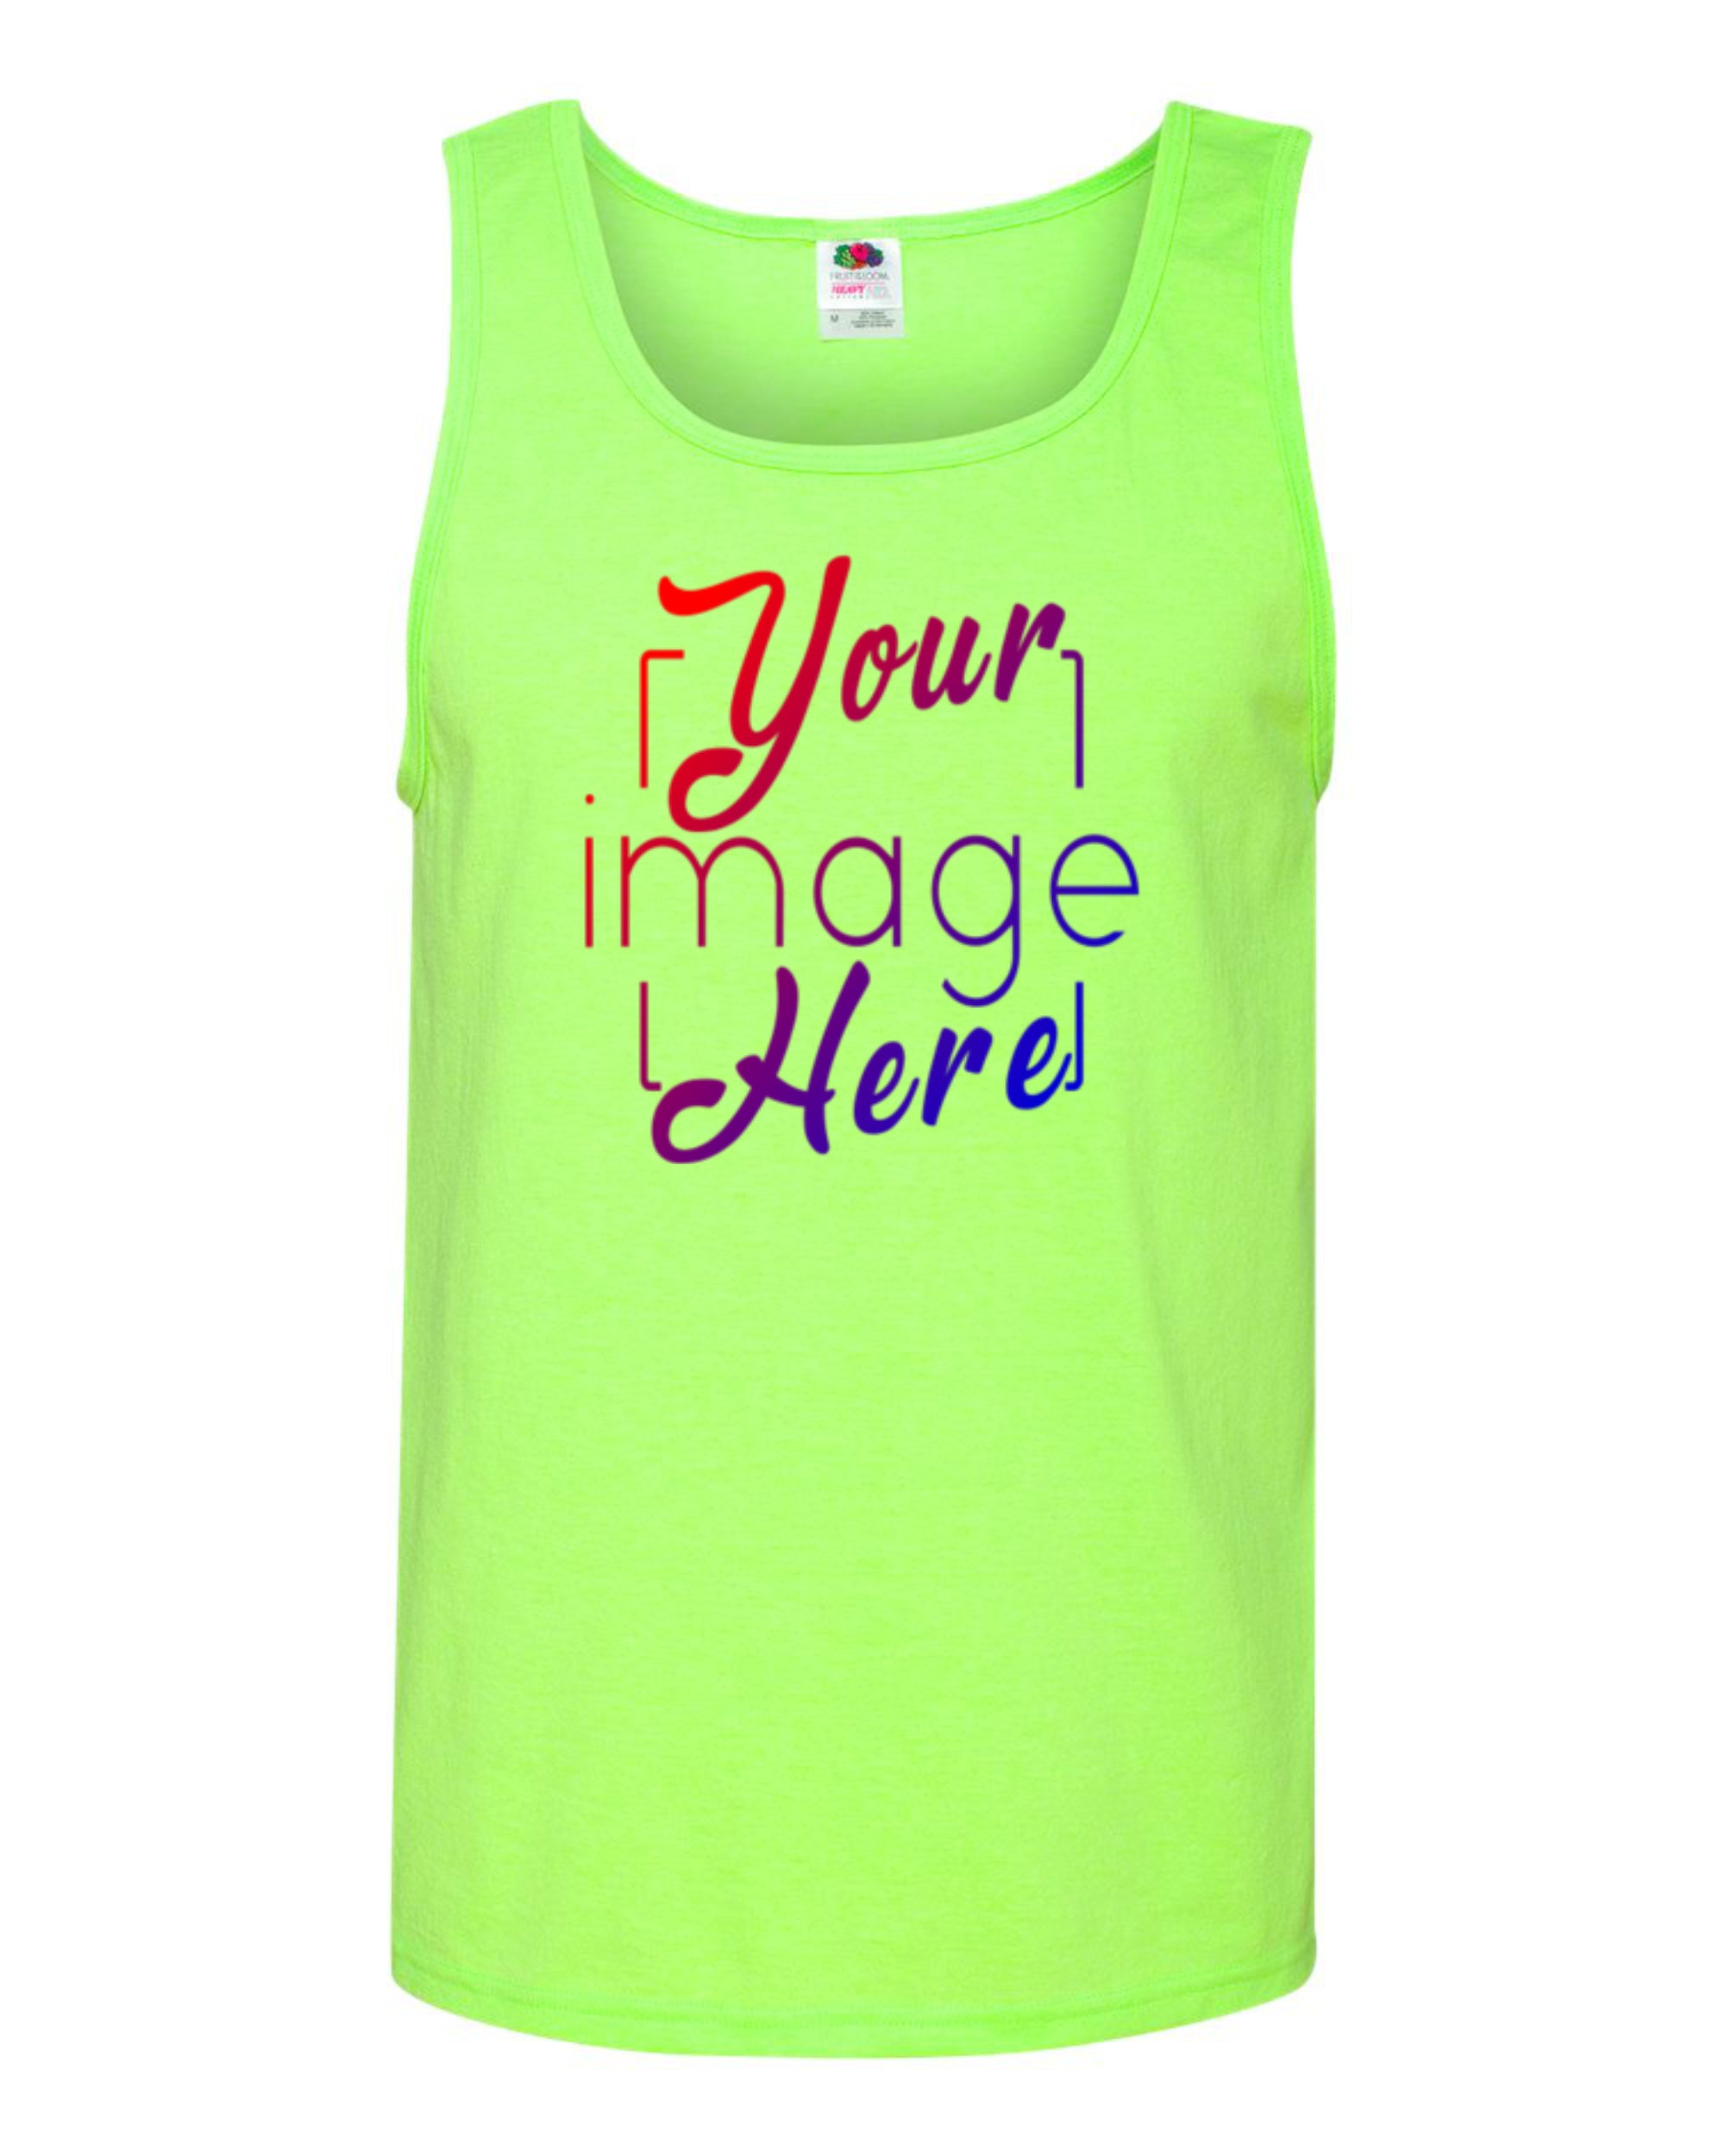 Image of front of Men's Tank Top for Custom Printing